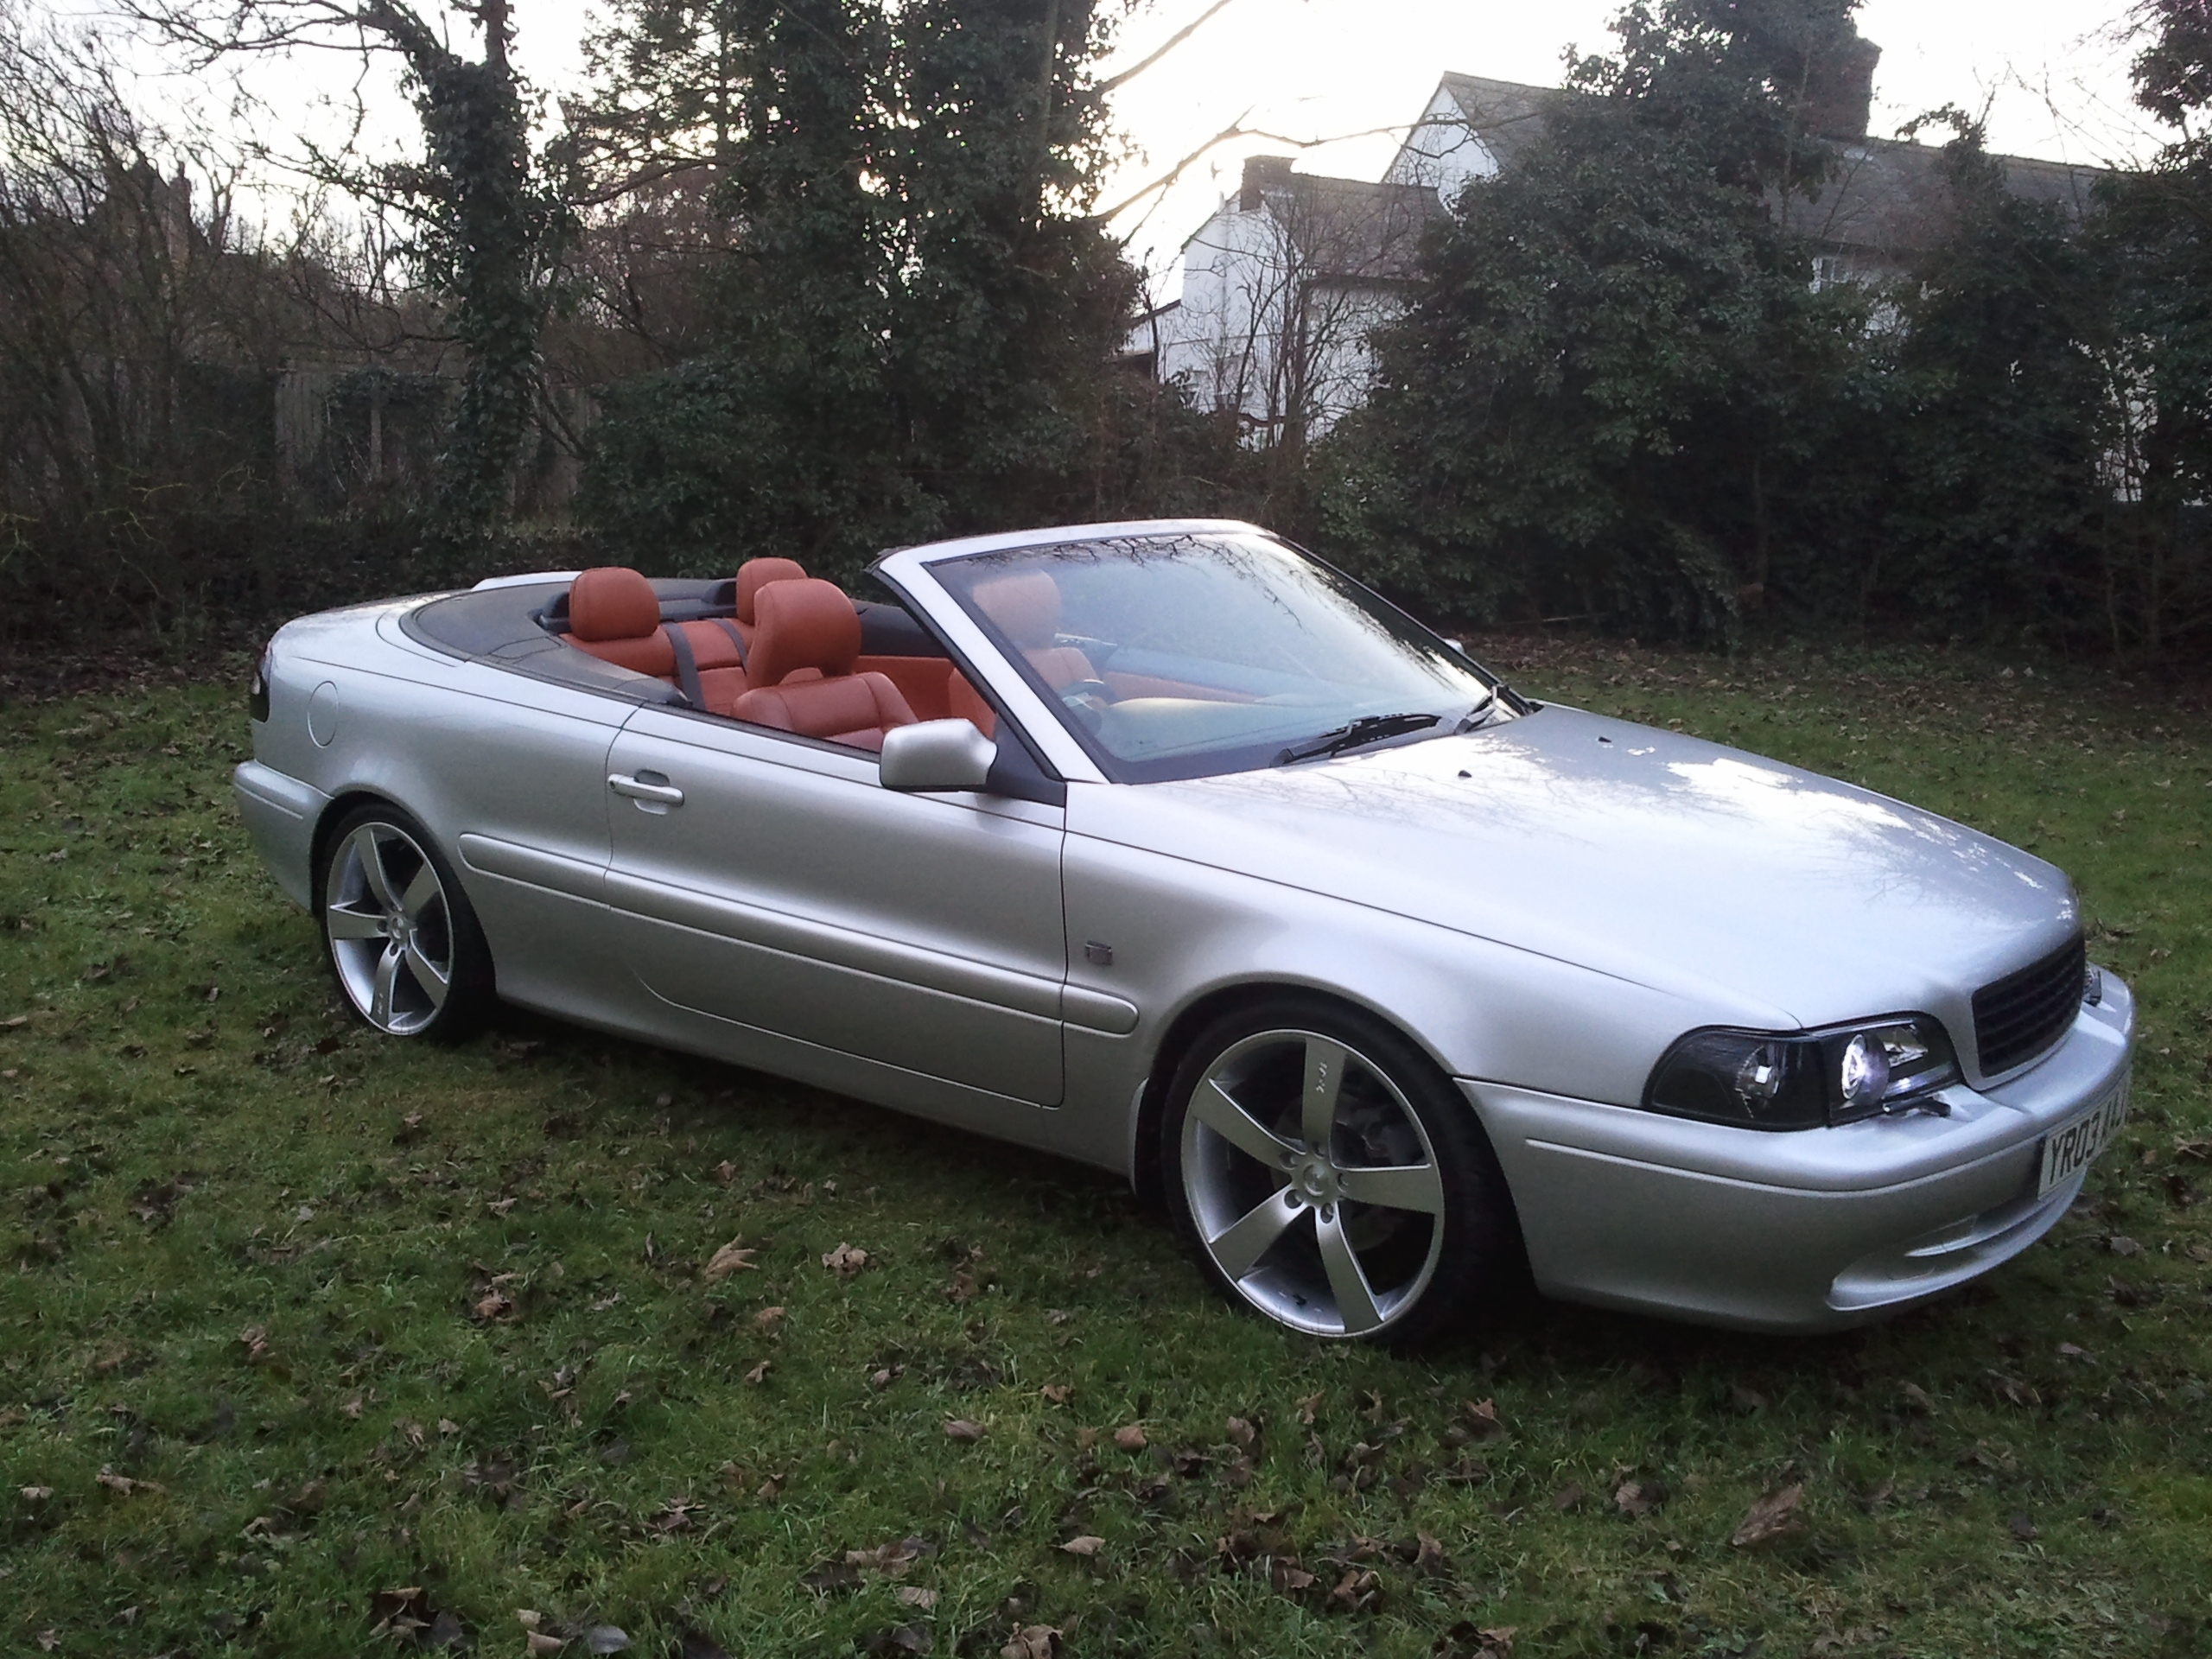 parkers v how much insure it review convertible volvo is to